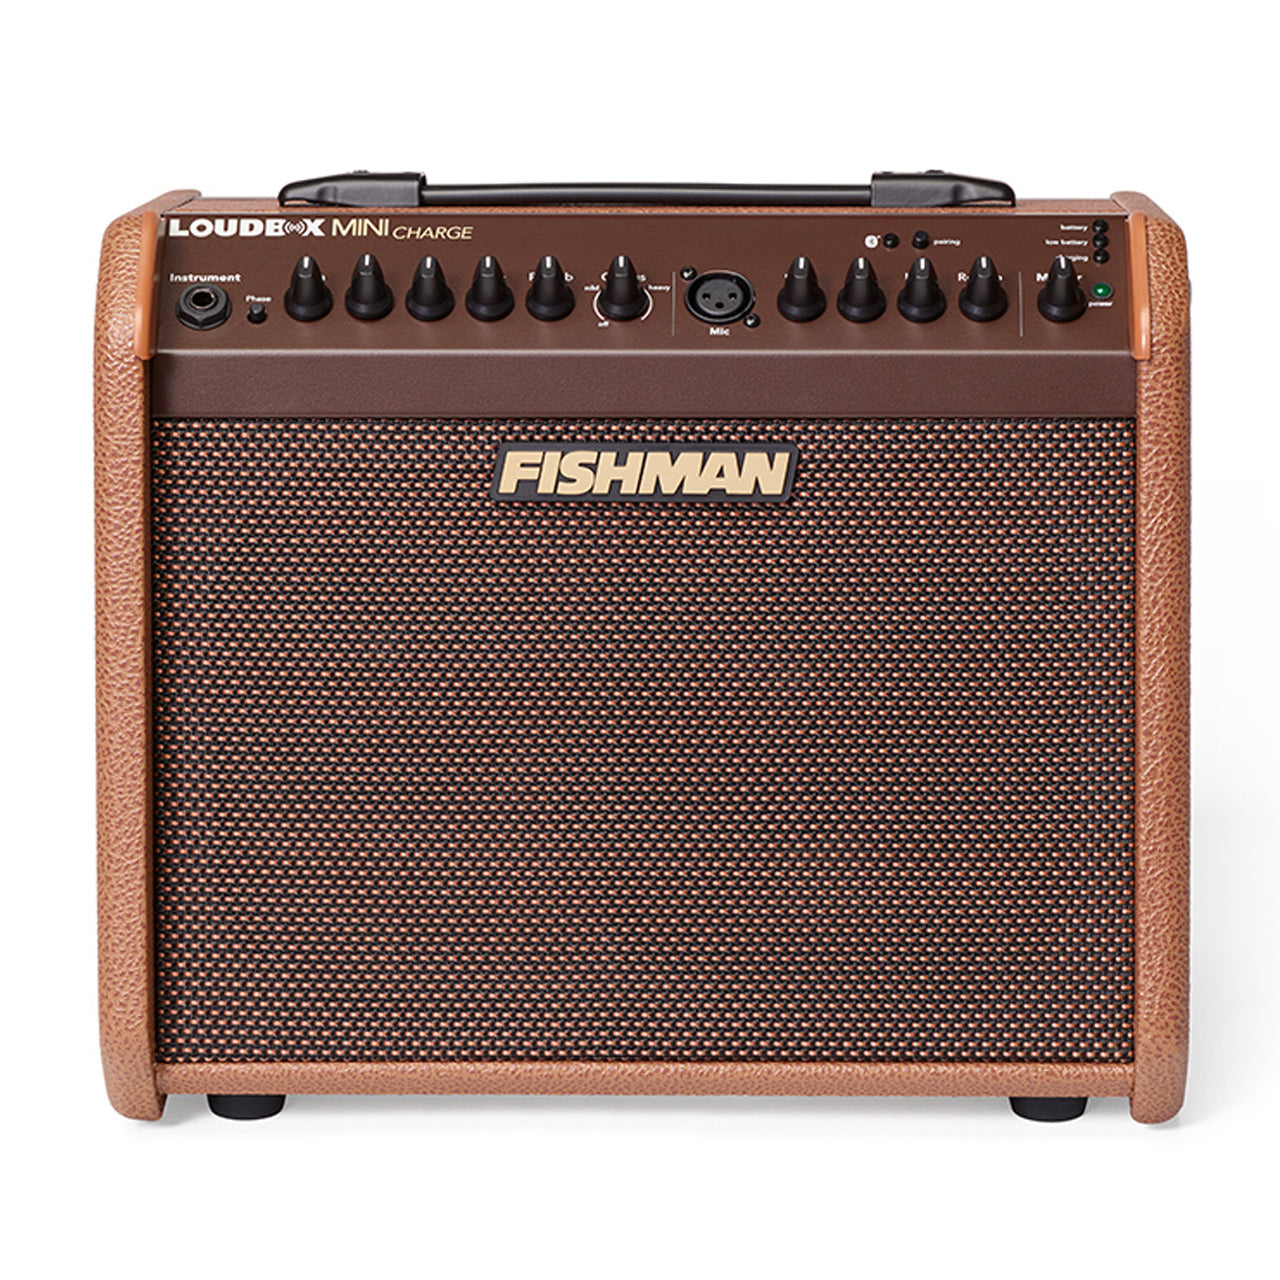 Fishman Loudbox Mini Charge Battery Powered Acoustic Instrument